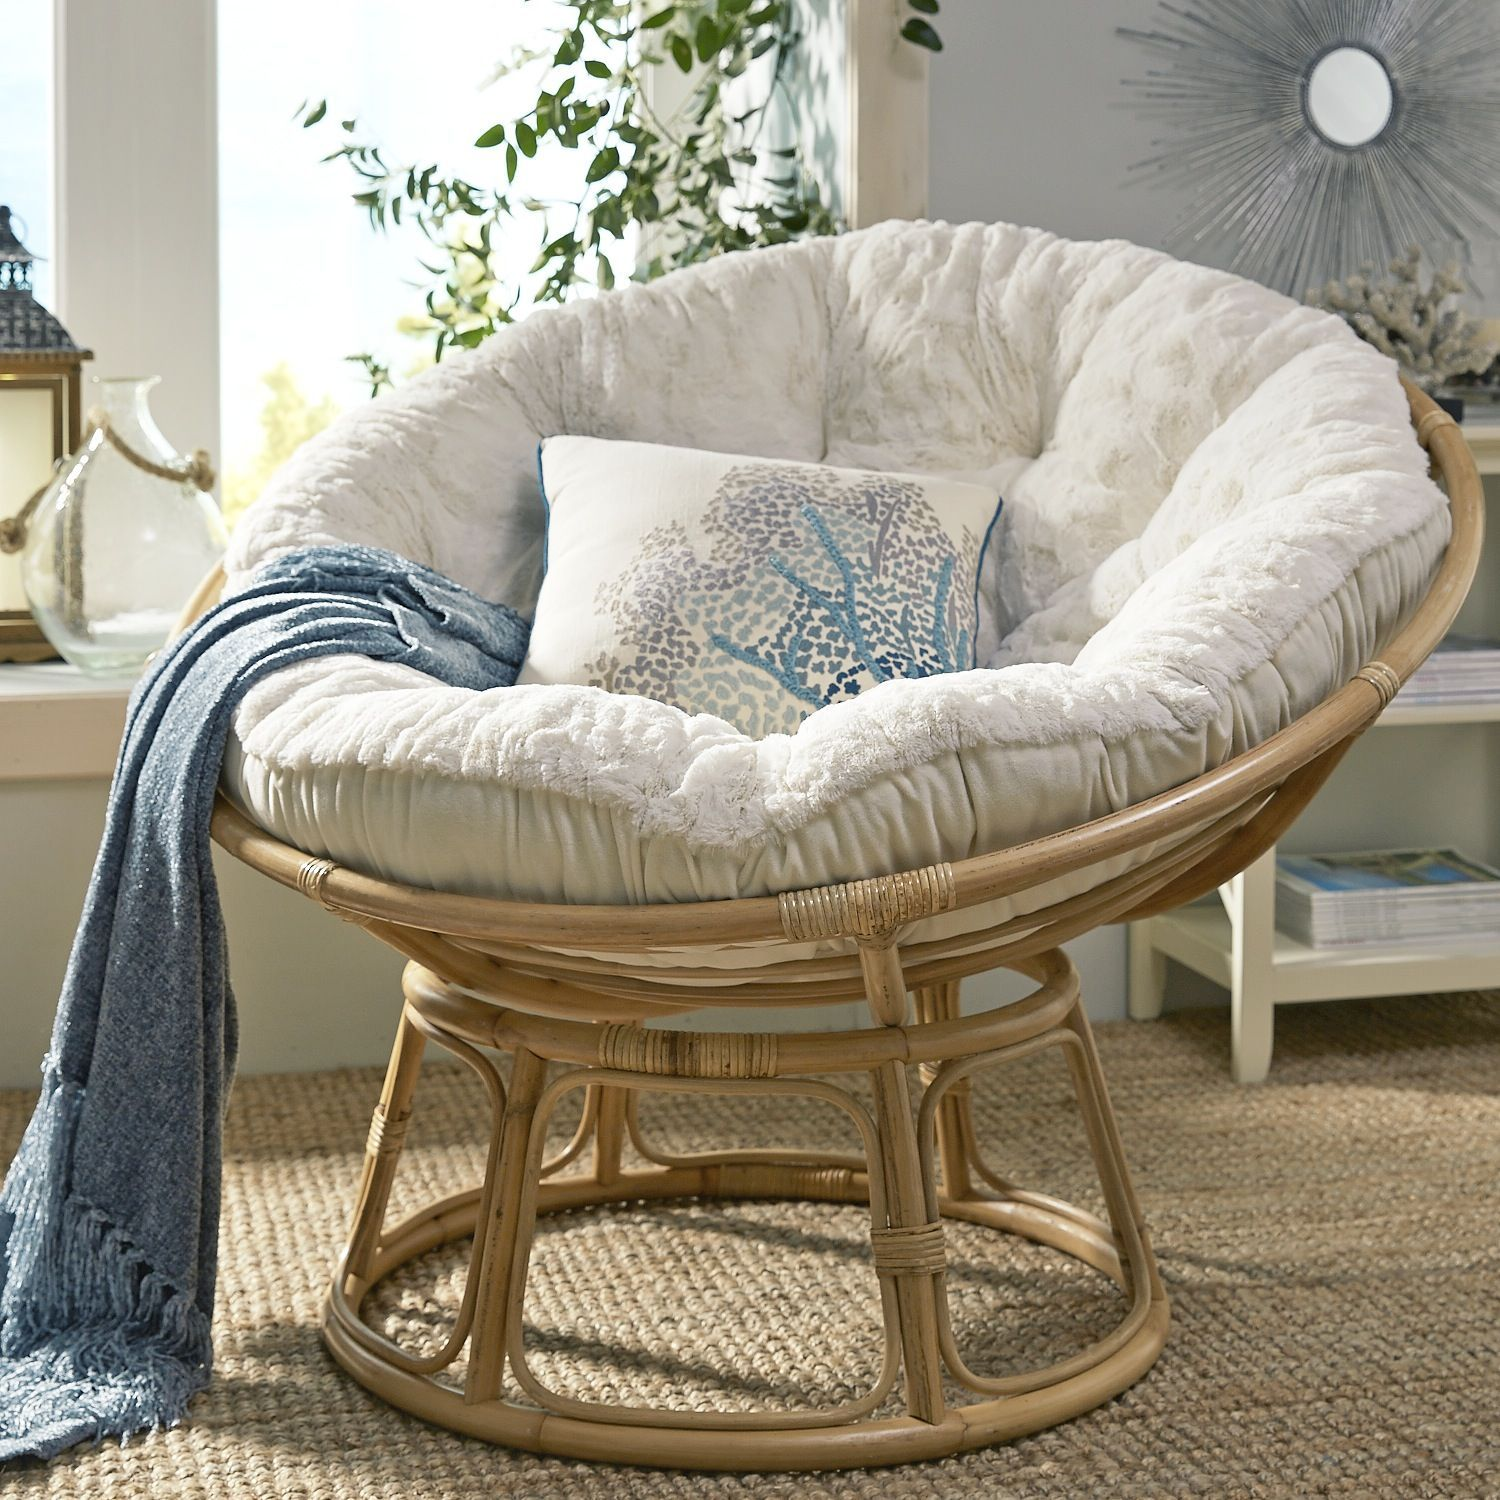 Papisan Chair Papasan Natural Chair Frame Papasan Chair Room And